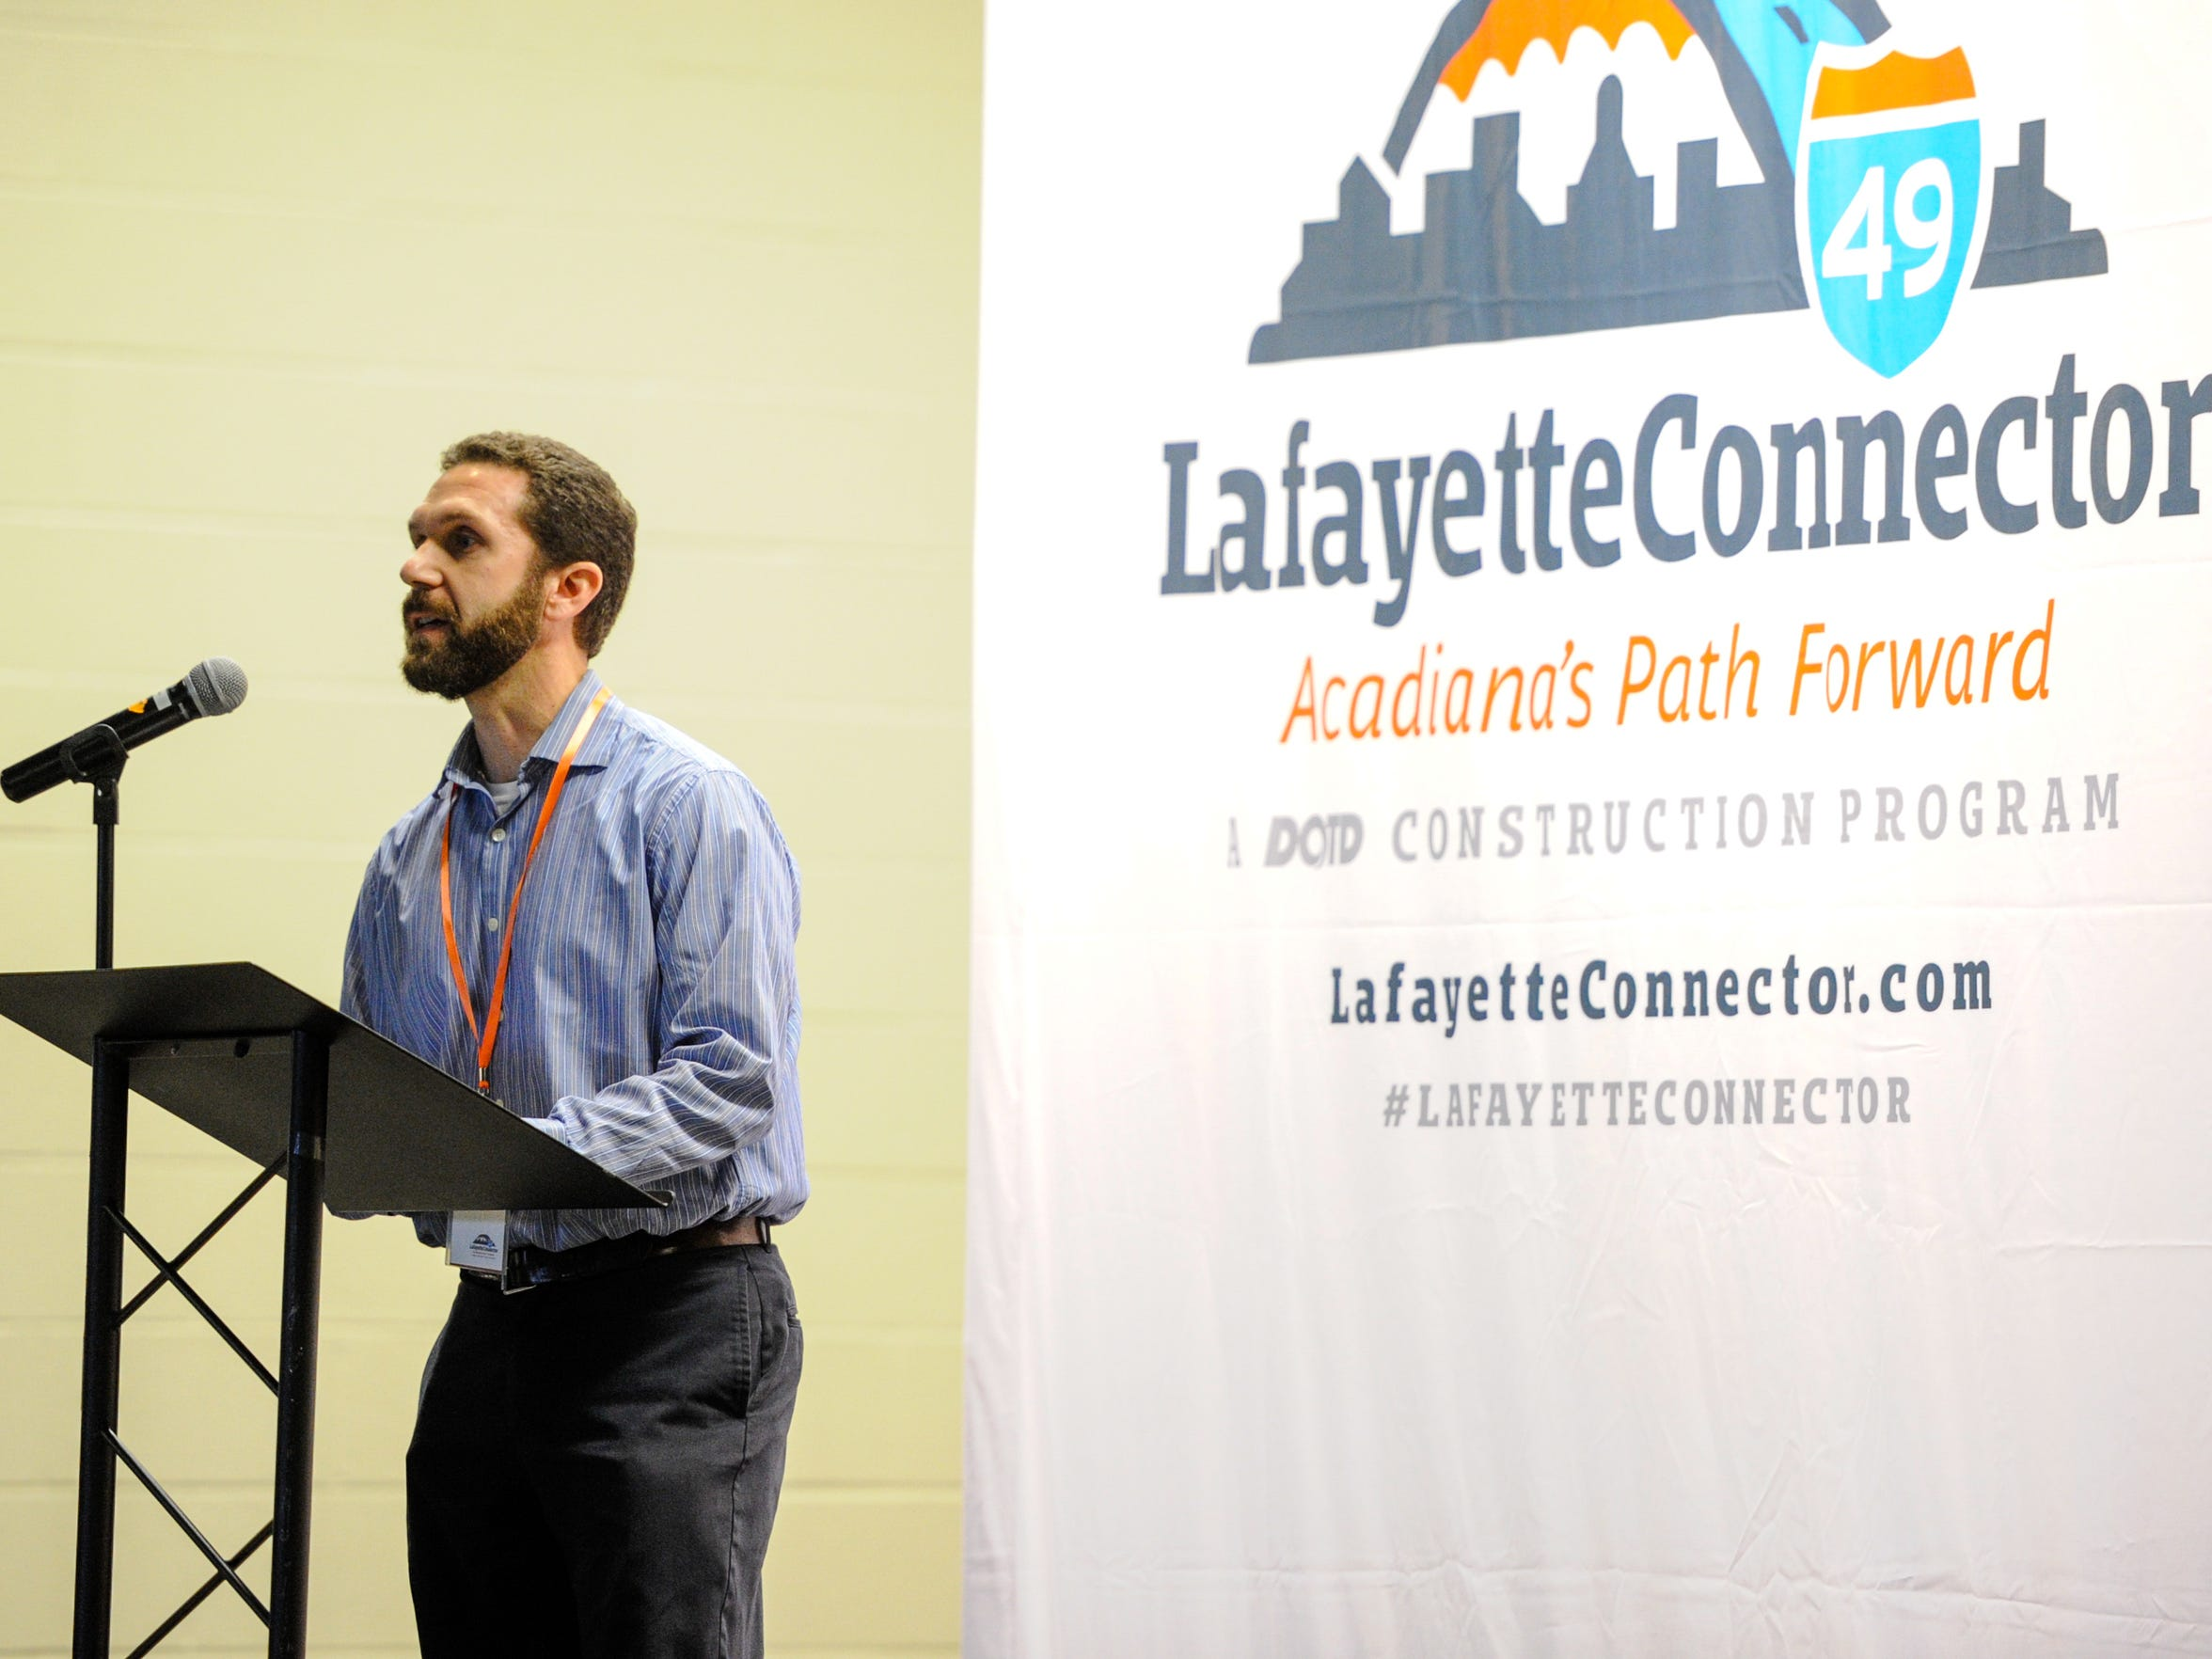 Toby Picard addresses the group as the DOTD hosted a community workshop to prepare for the planning process of the I-49 connector. Members of the community were invited to participate by engaging in conversation, learning about the proposal and helping to design the Lafayette Connector. Breakout sessions included,  placemaking, connectivity, environment and path for progress.